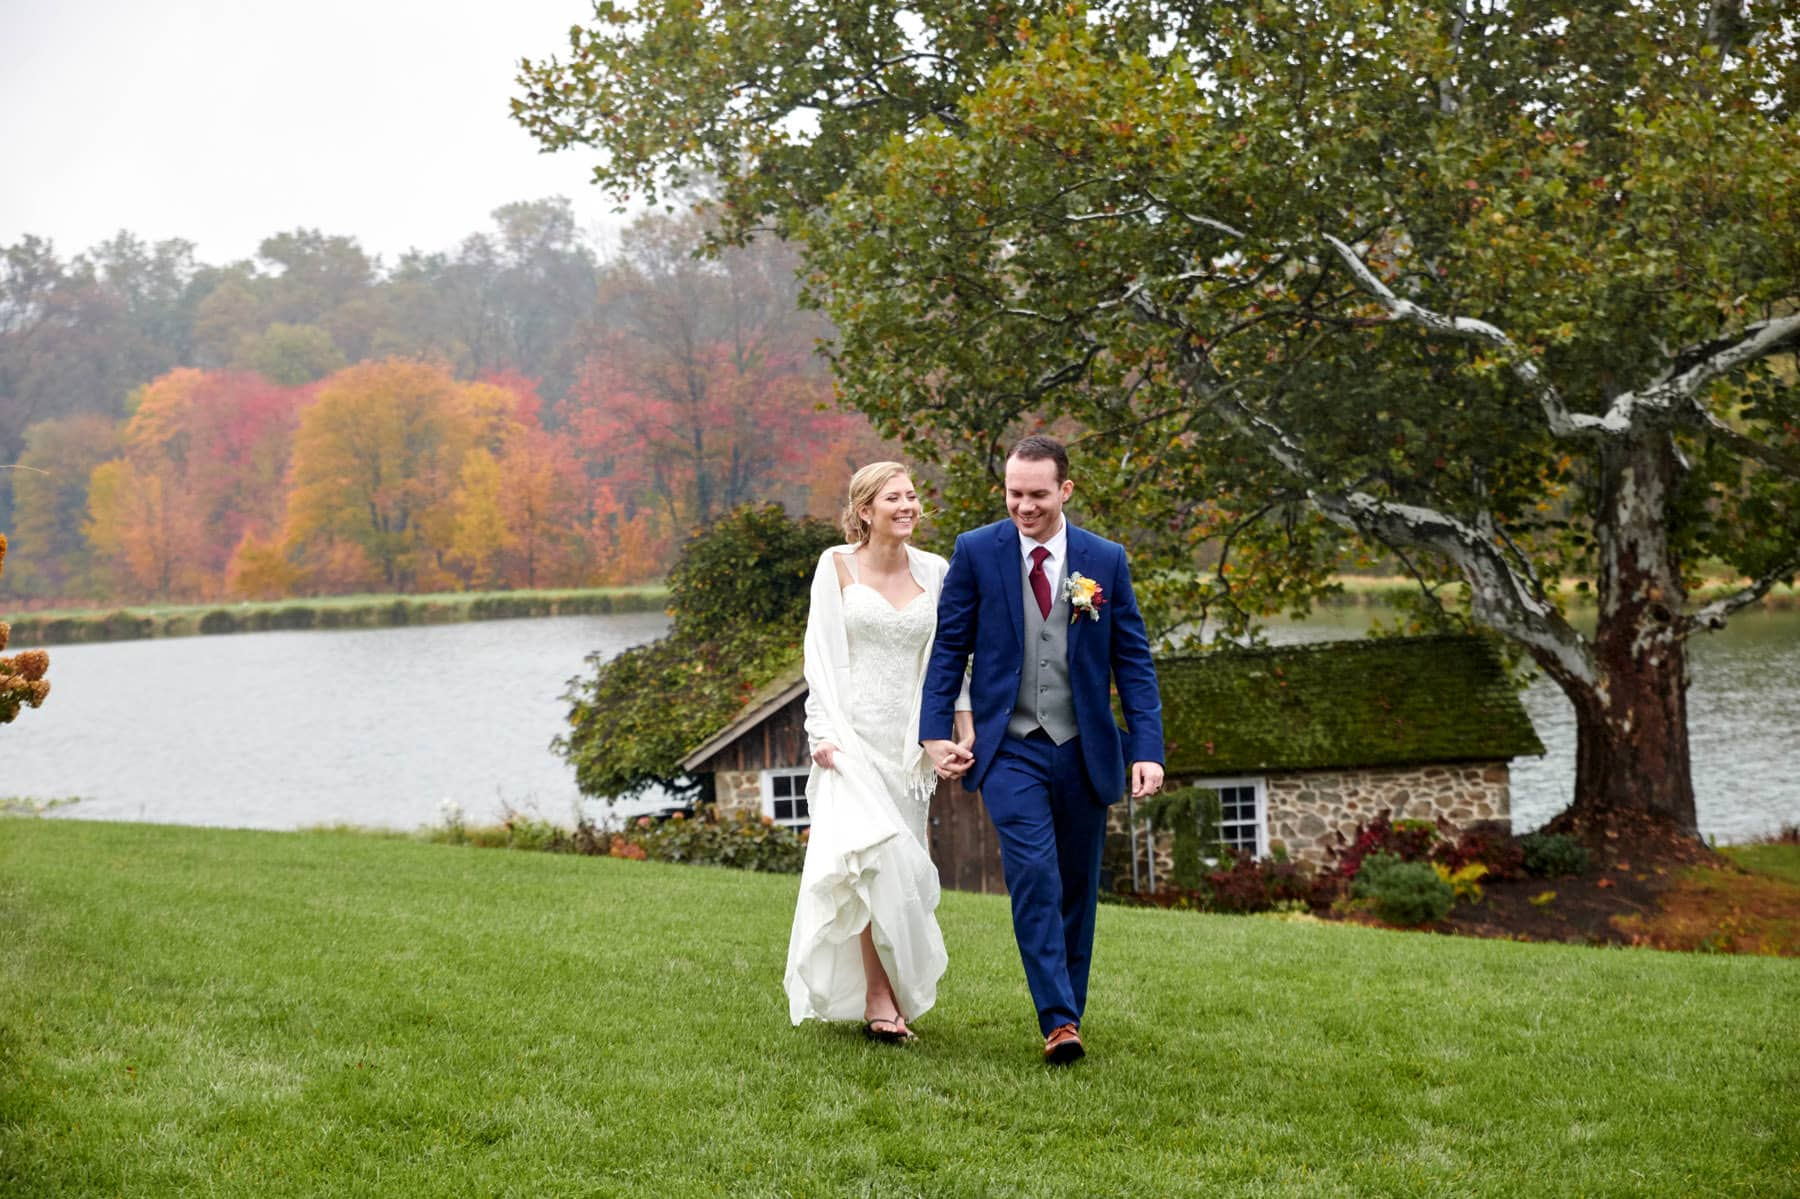 French Creek Golf Club wedding photo on a fall day